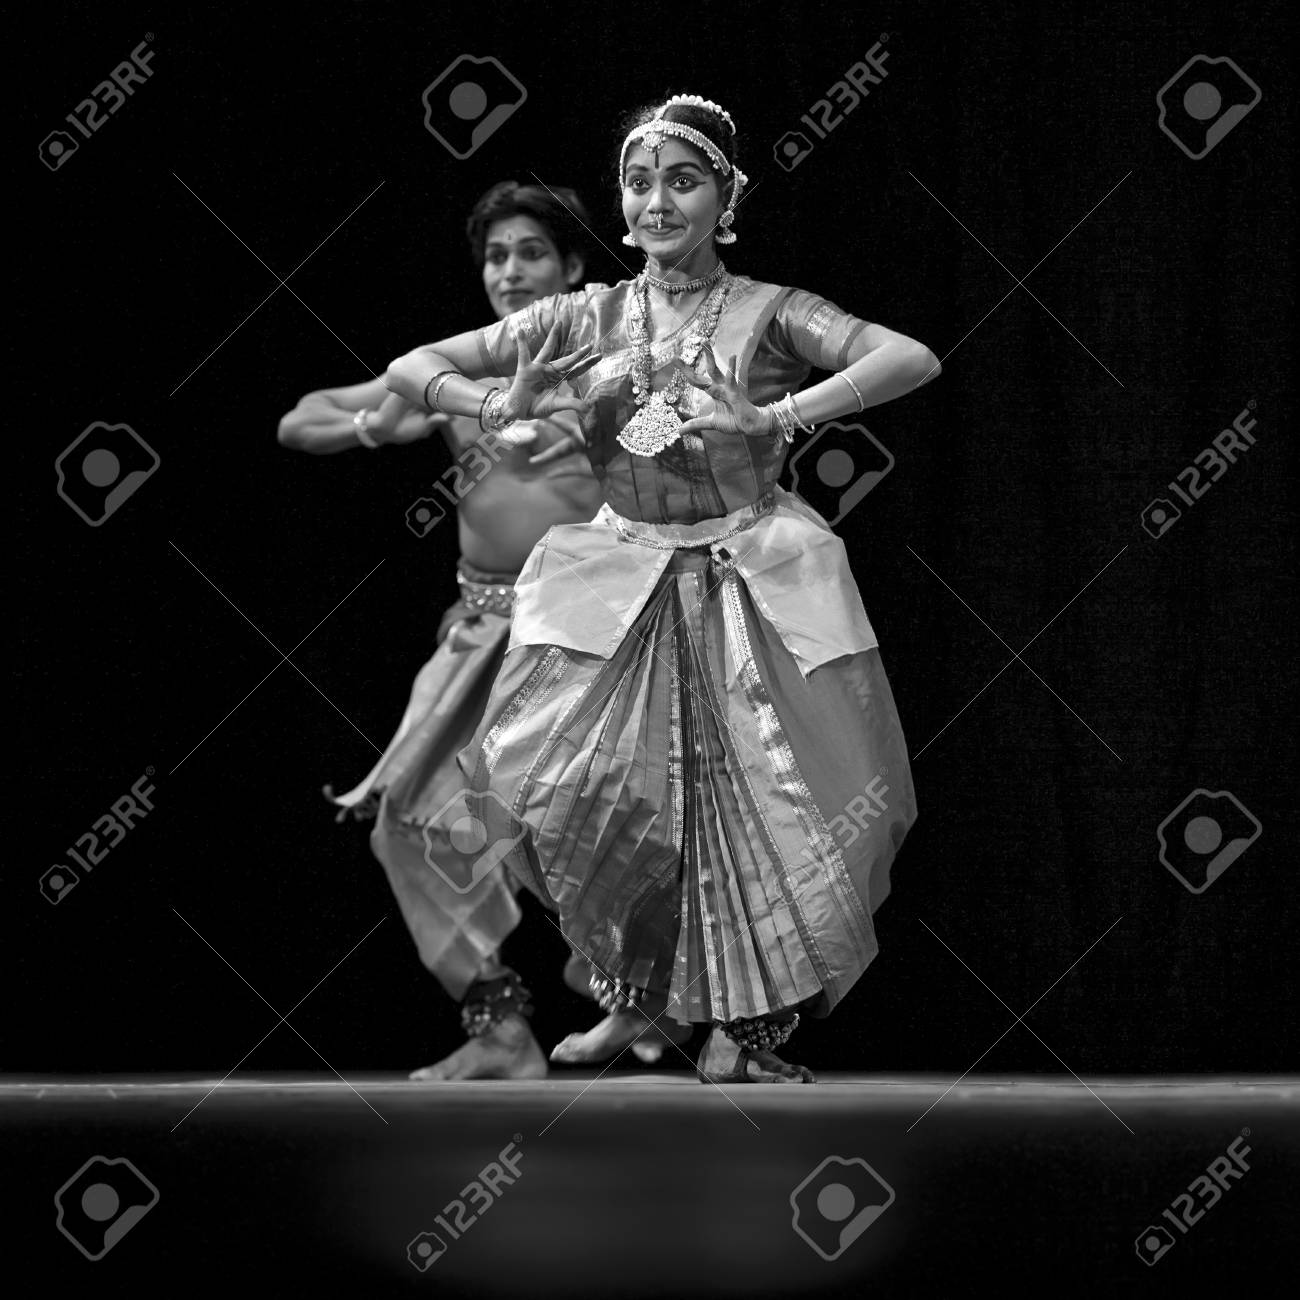 CHENGDU, CHINA - OCT 24,2010: Indian Dancers perform folk dance at JINCHENG theater during the festival of India in china.Oct 24,2010 in Chengdu, China. Stock Photo - 9350542